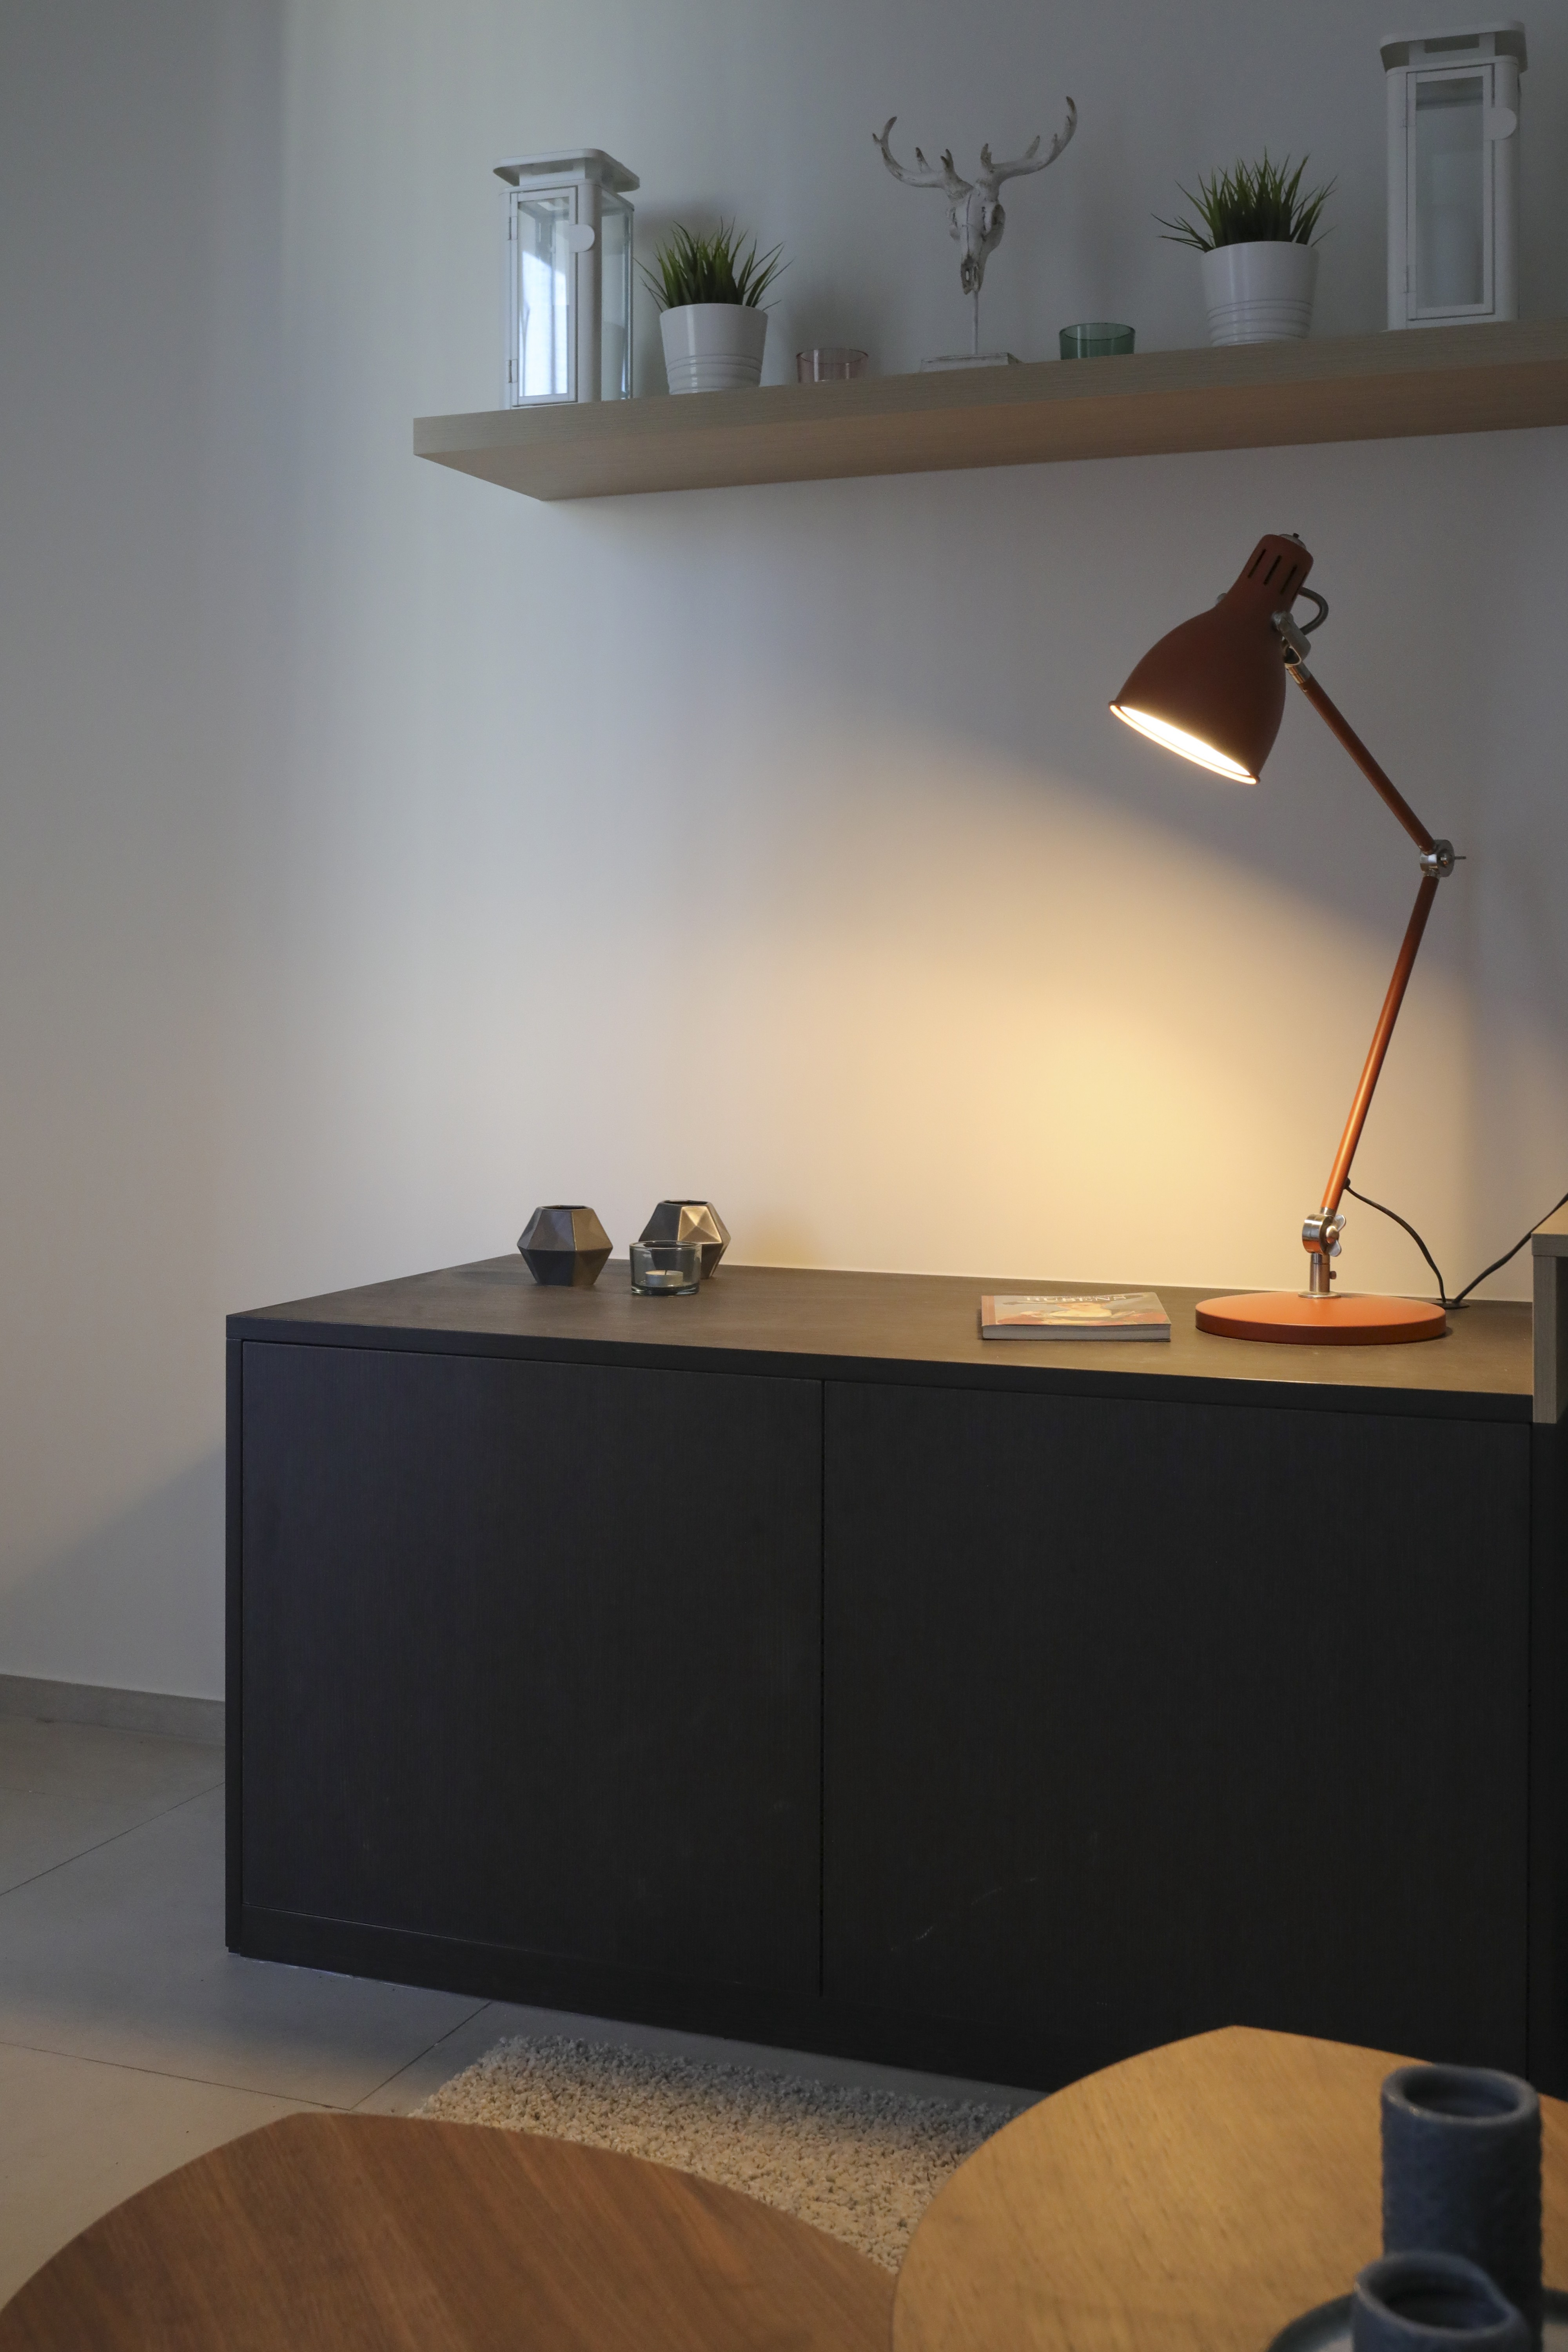 A reading lamp sitting on a desk.